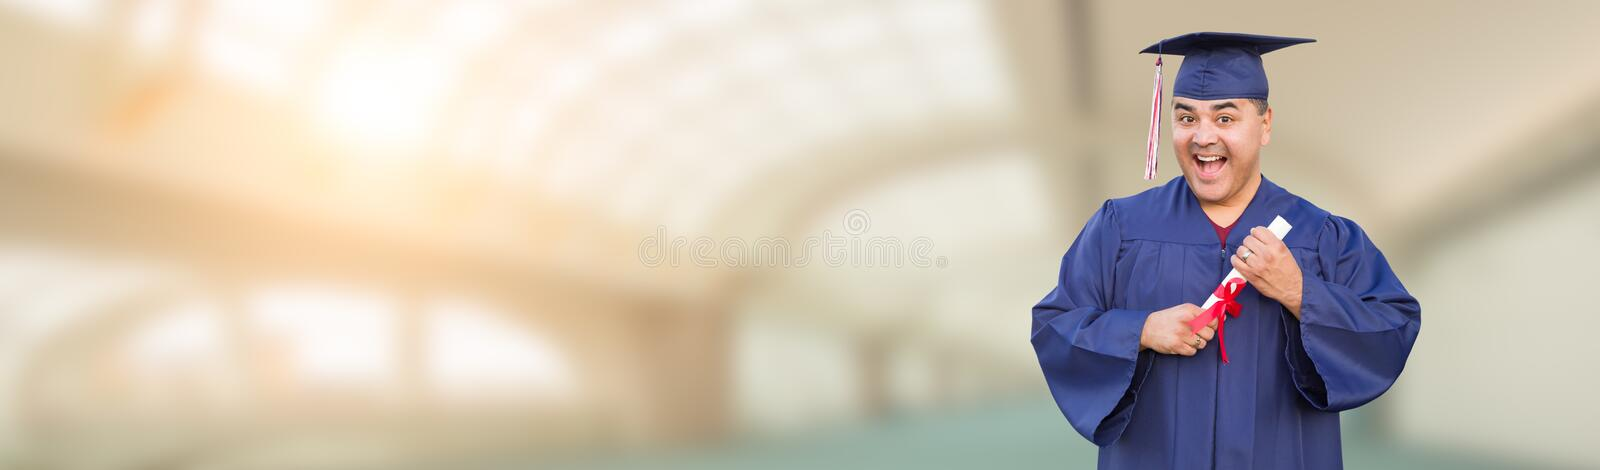 Hispanic Male With Diploma Wearing Graduation Cap and Gown On Campus Banner.  royalty free stock photos